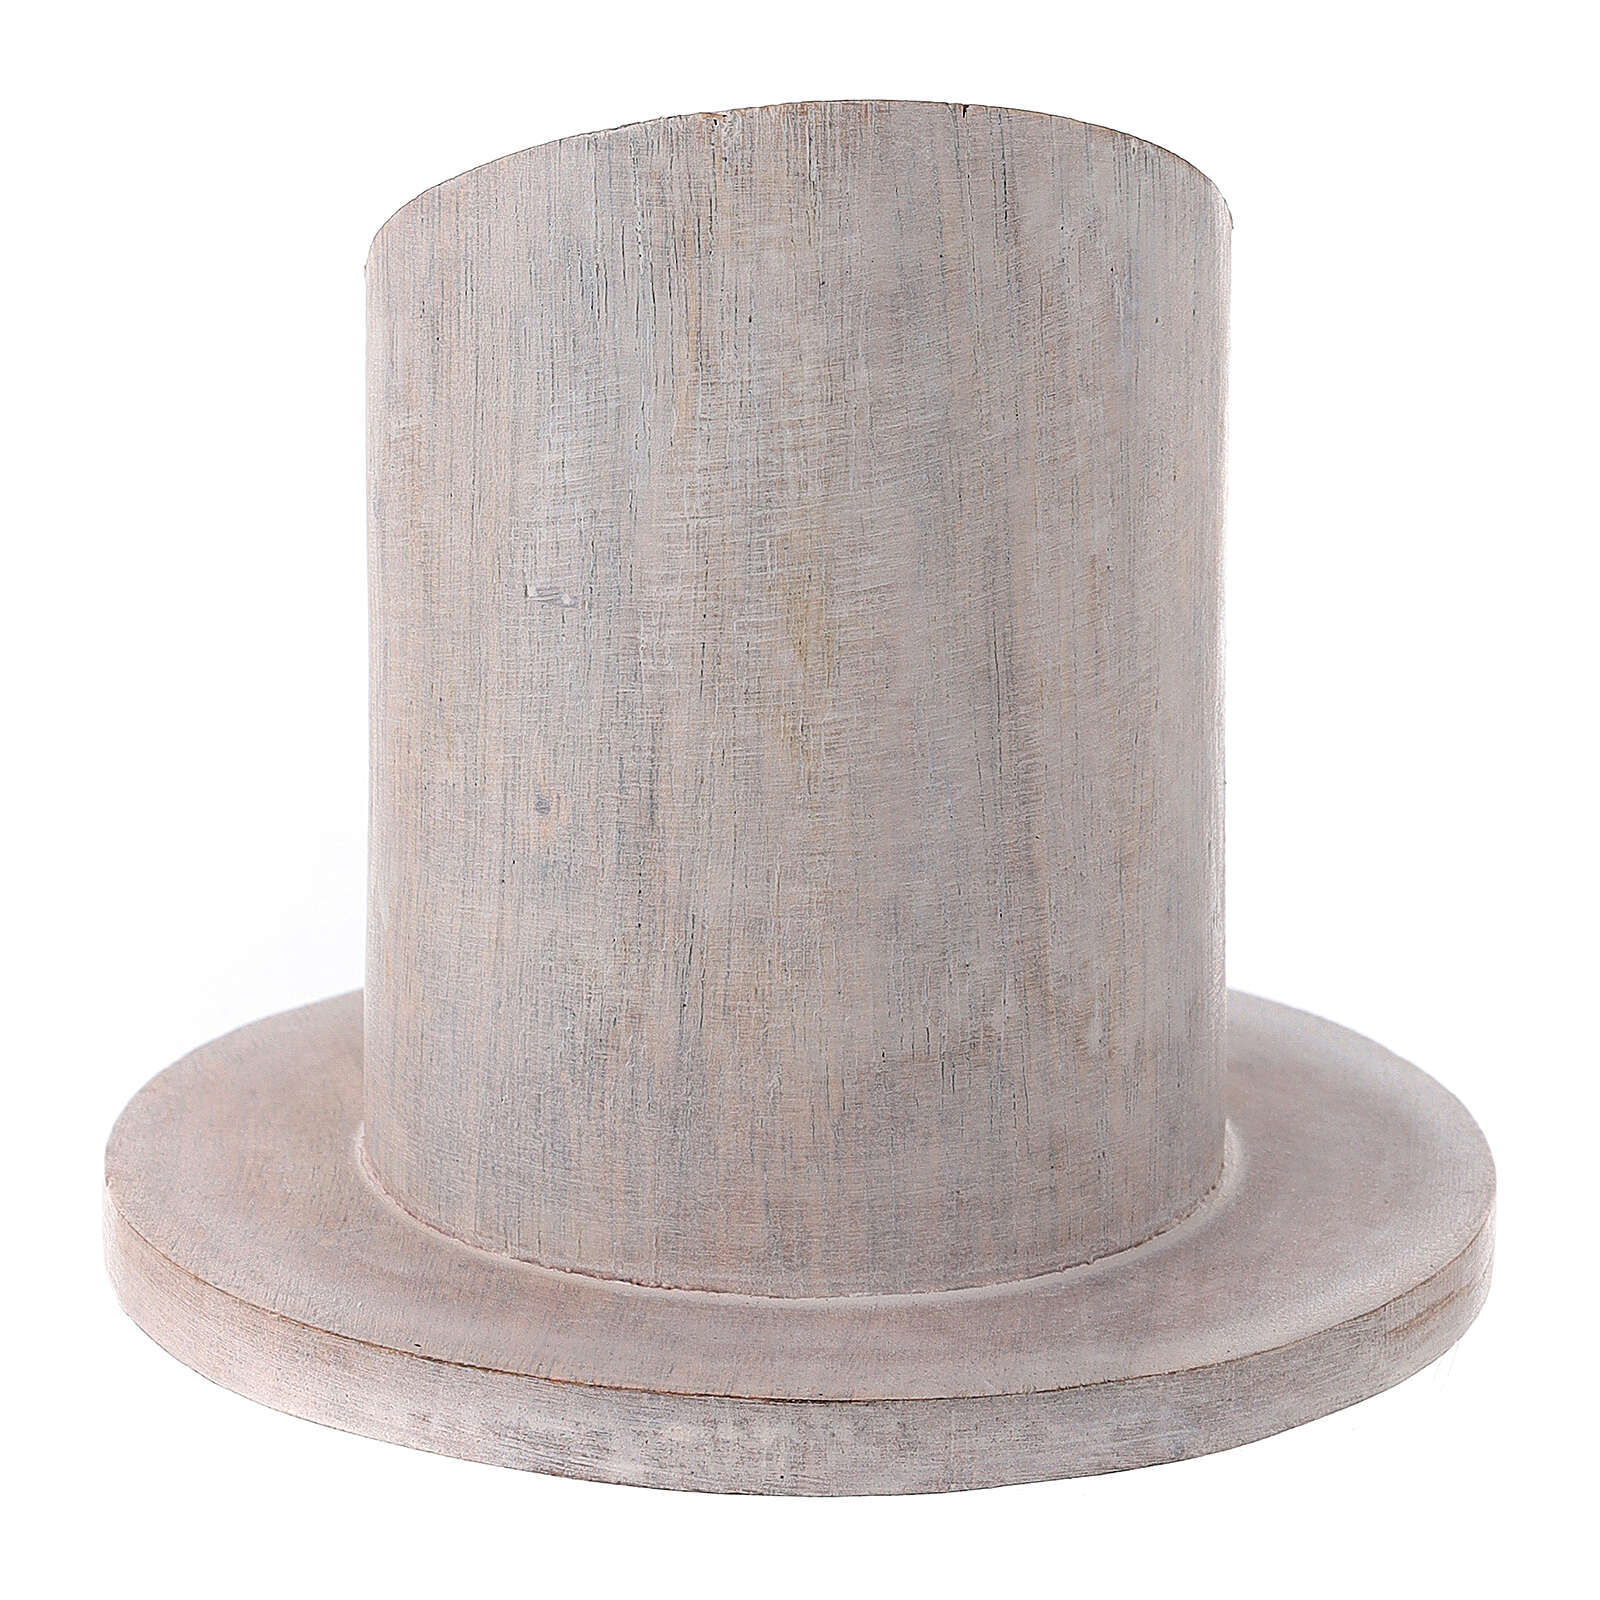 Pale mango wood candle holder 2 in 3